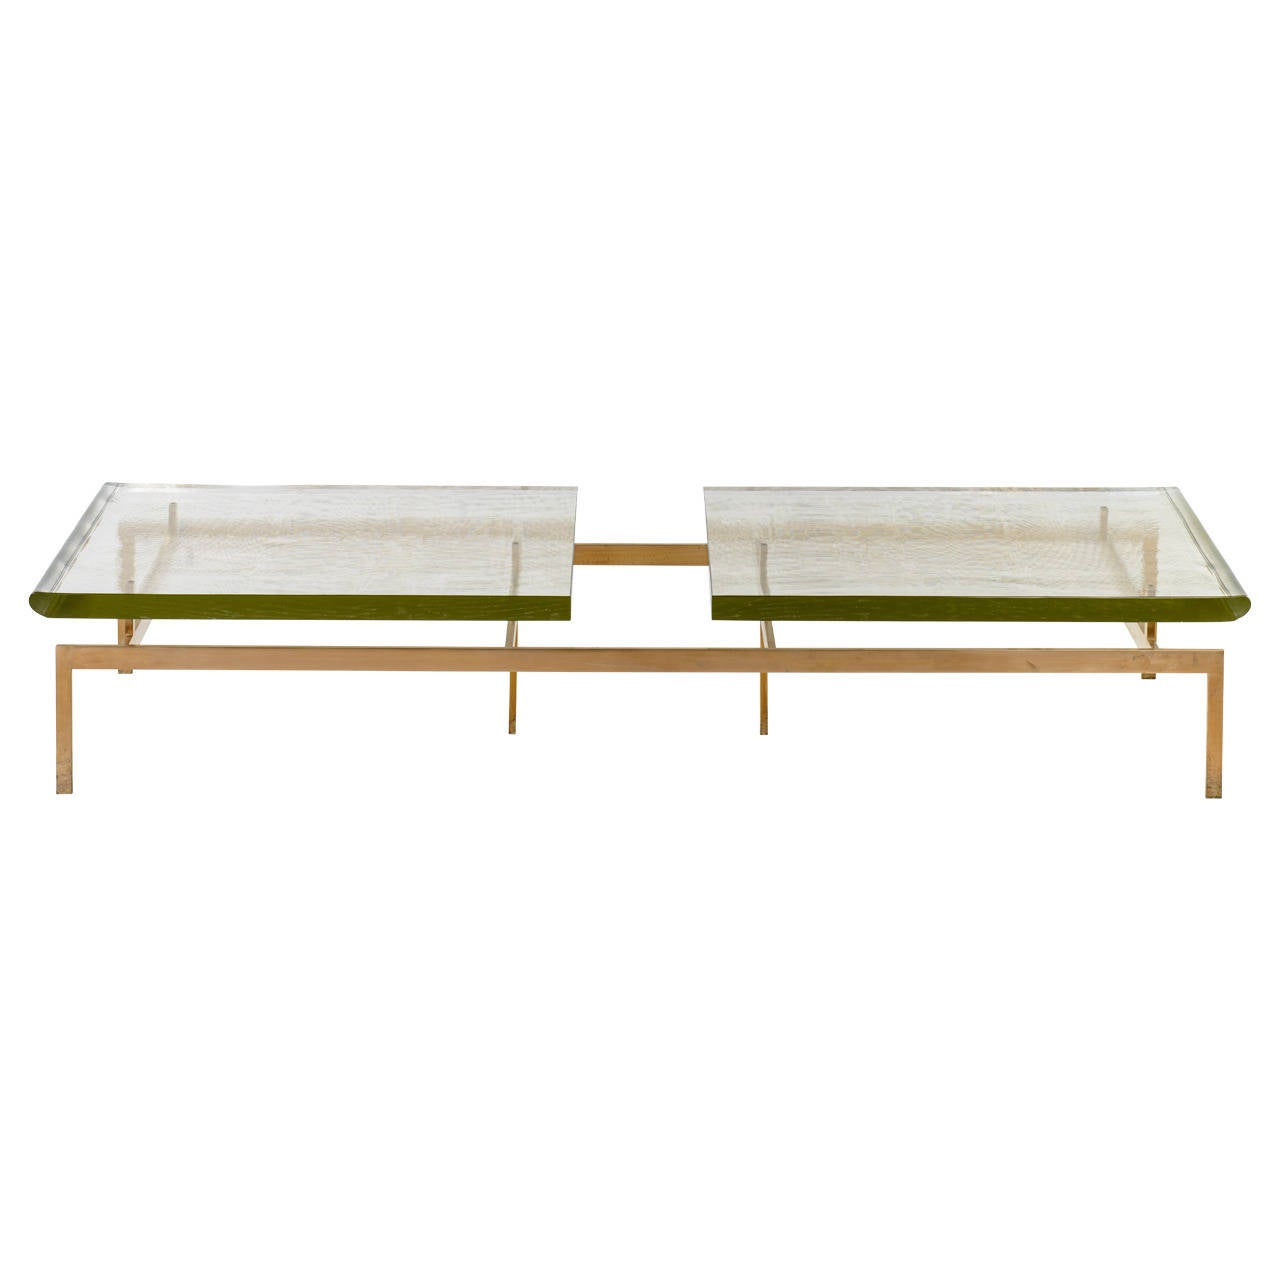 Duran Coffee Table, Polished Edges, Silicon Bronze Base, Custom Order For Sale